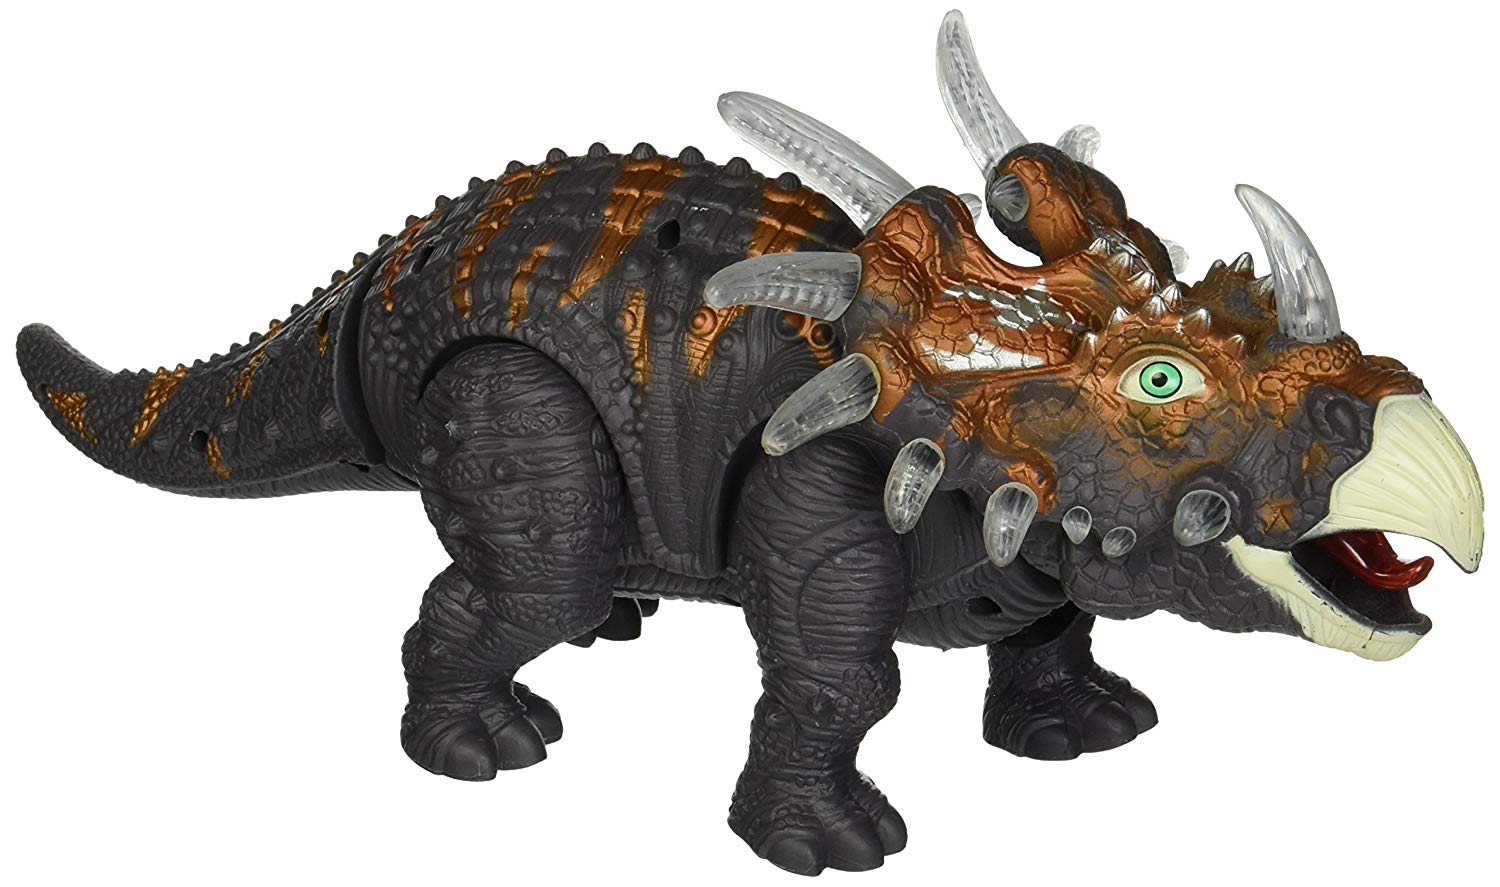 Walking Dinosaur Triceratops Toy Figure with Many Lights & Sounds